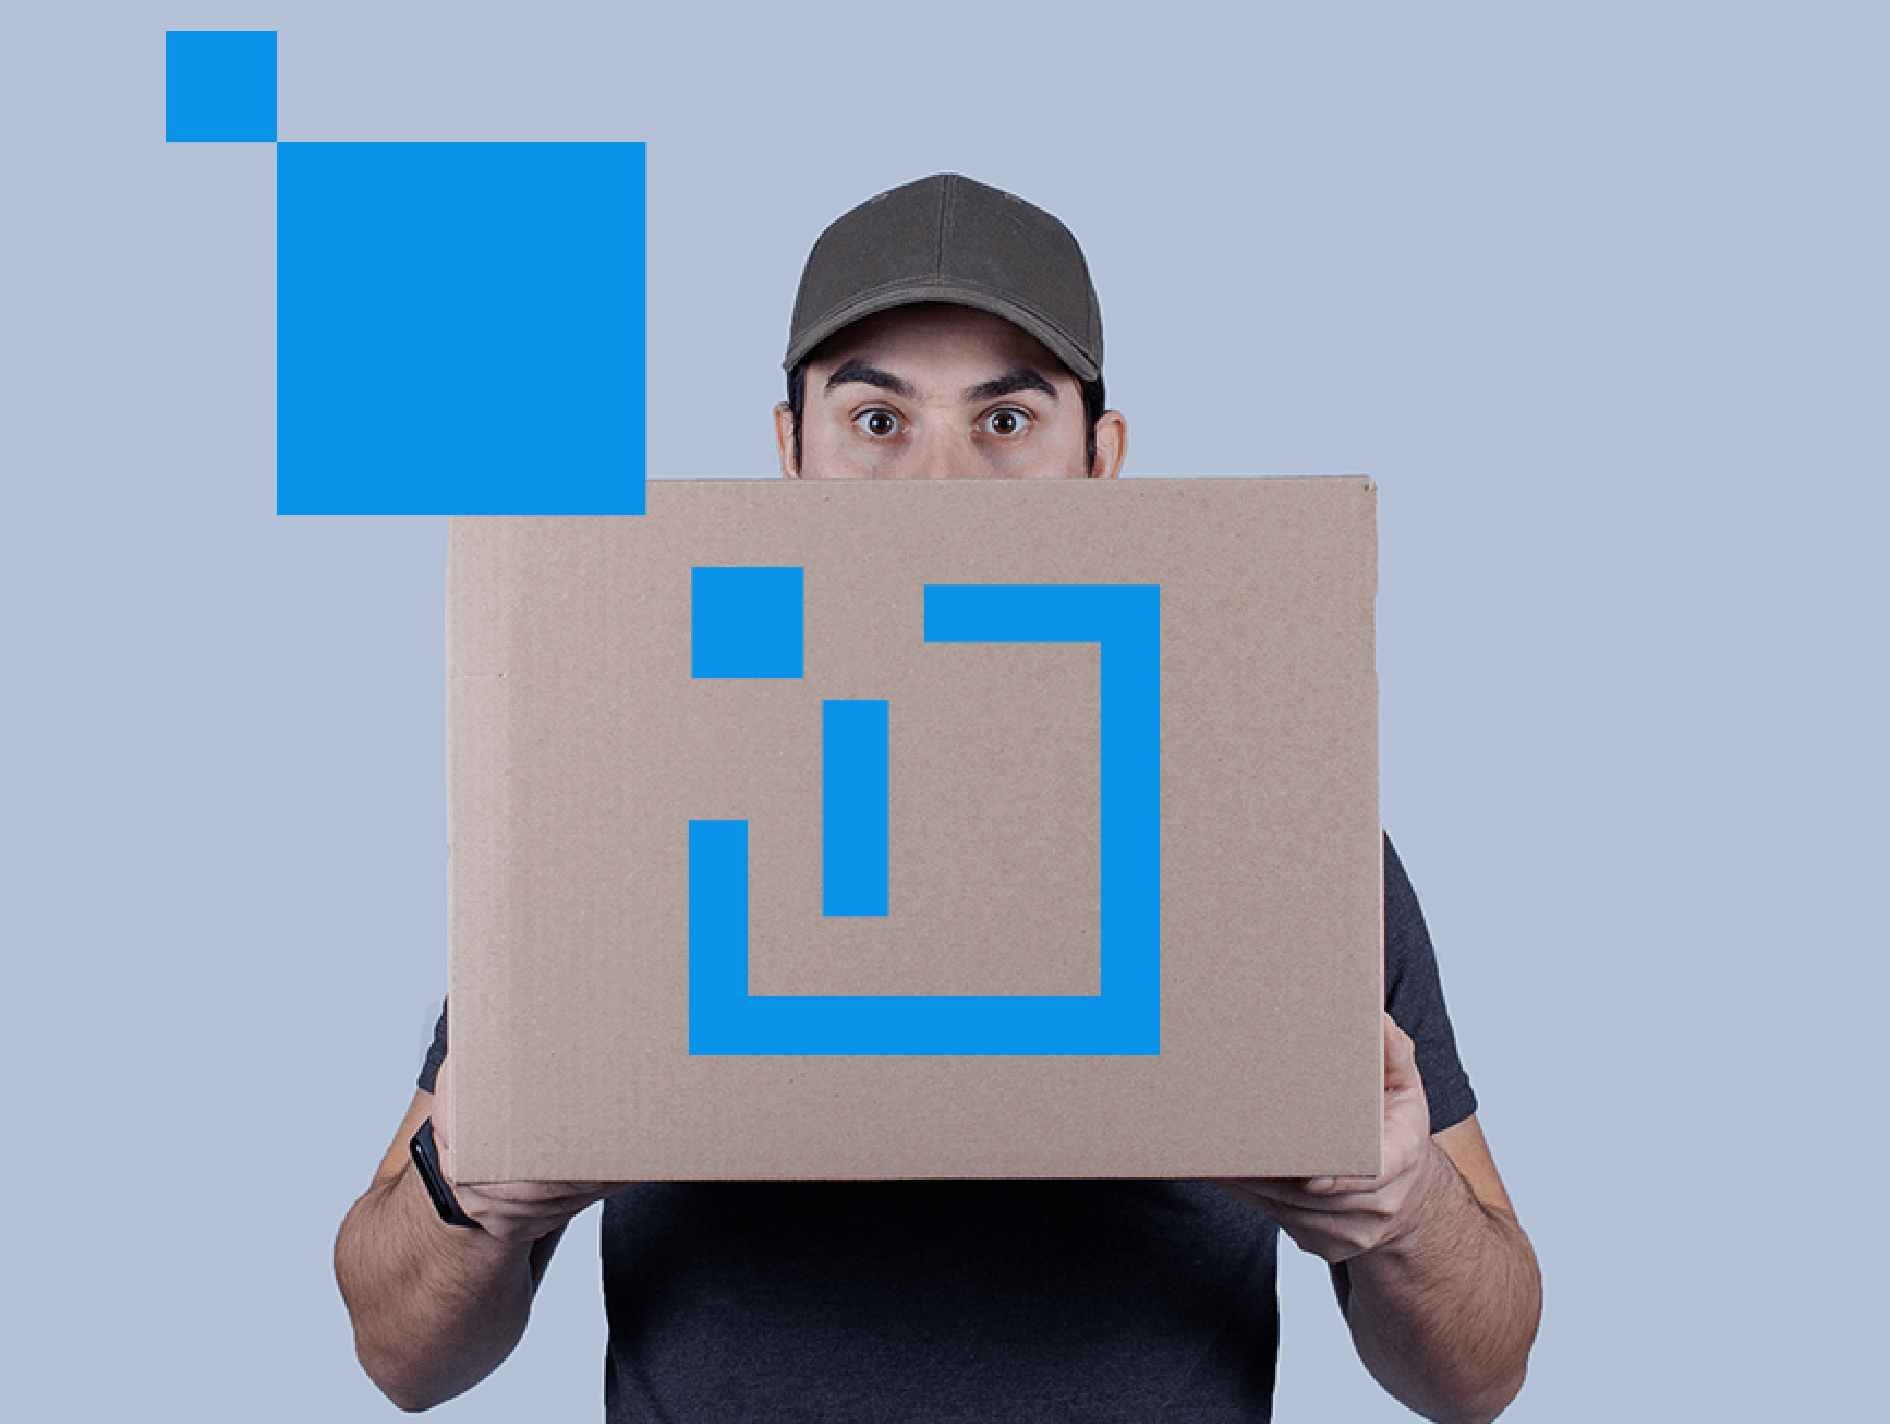 man holding a box in front of him